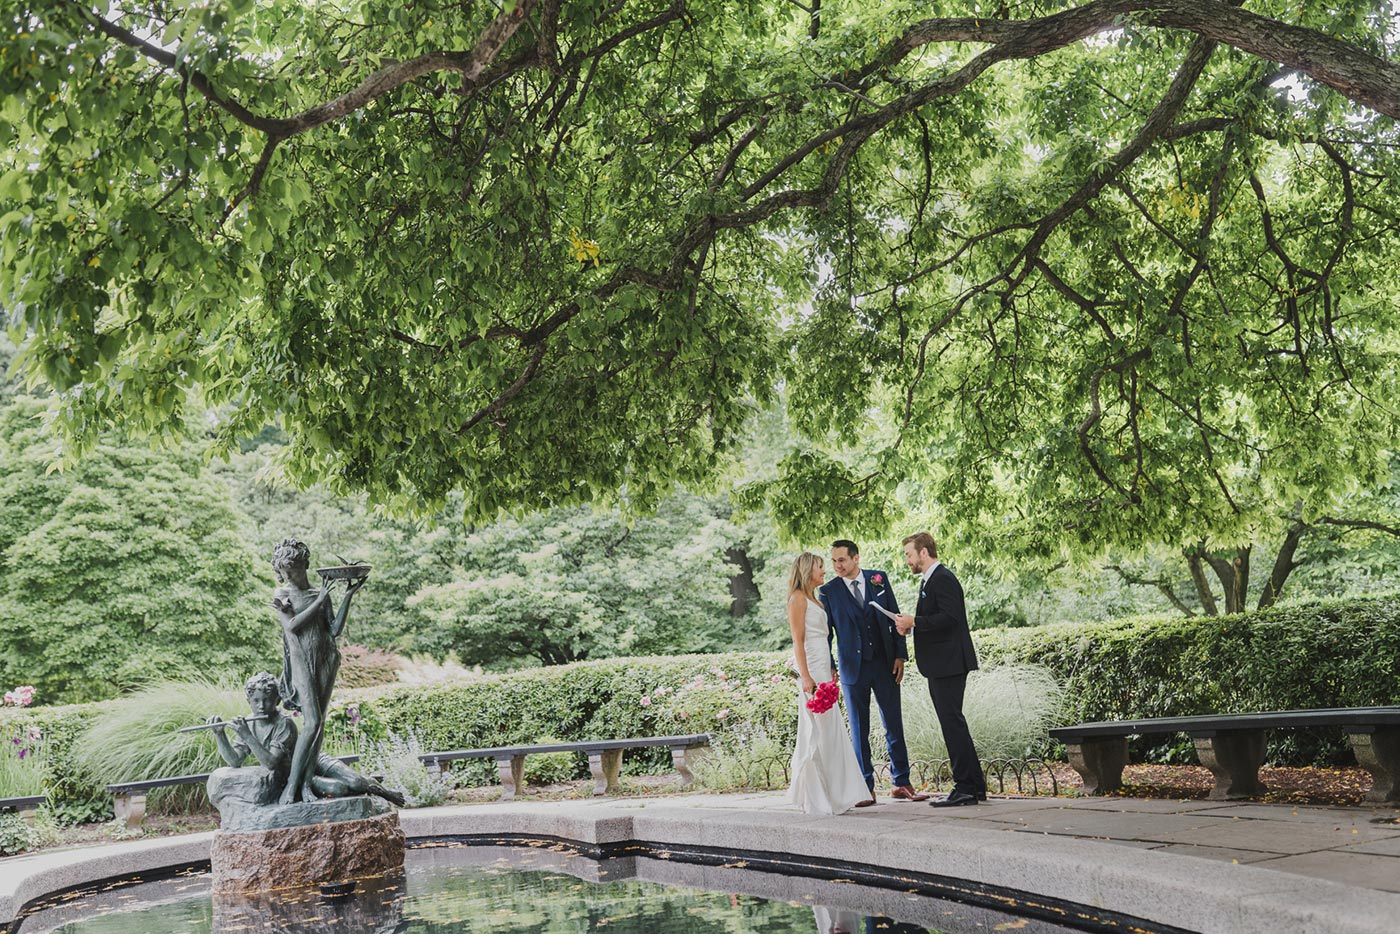 Jane & Neil at the Conservatory Garden for their elopement ceremony